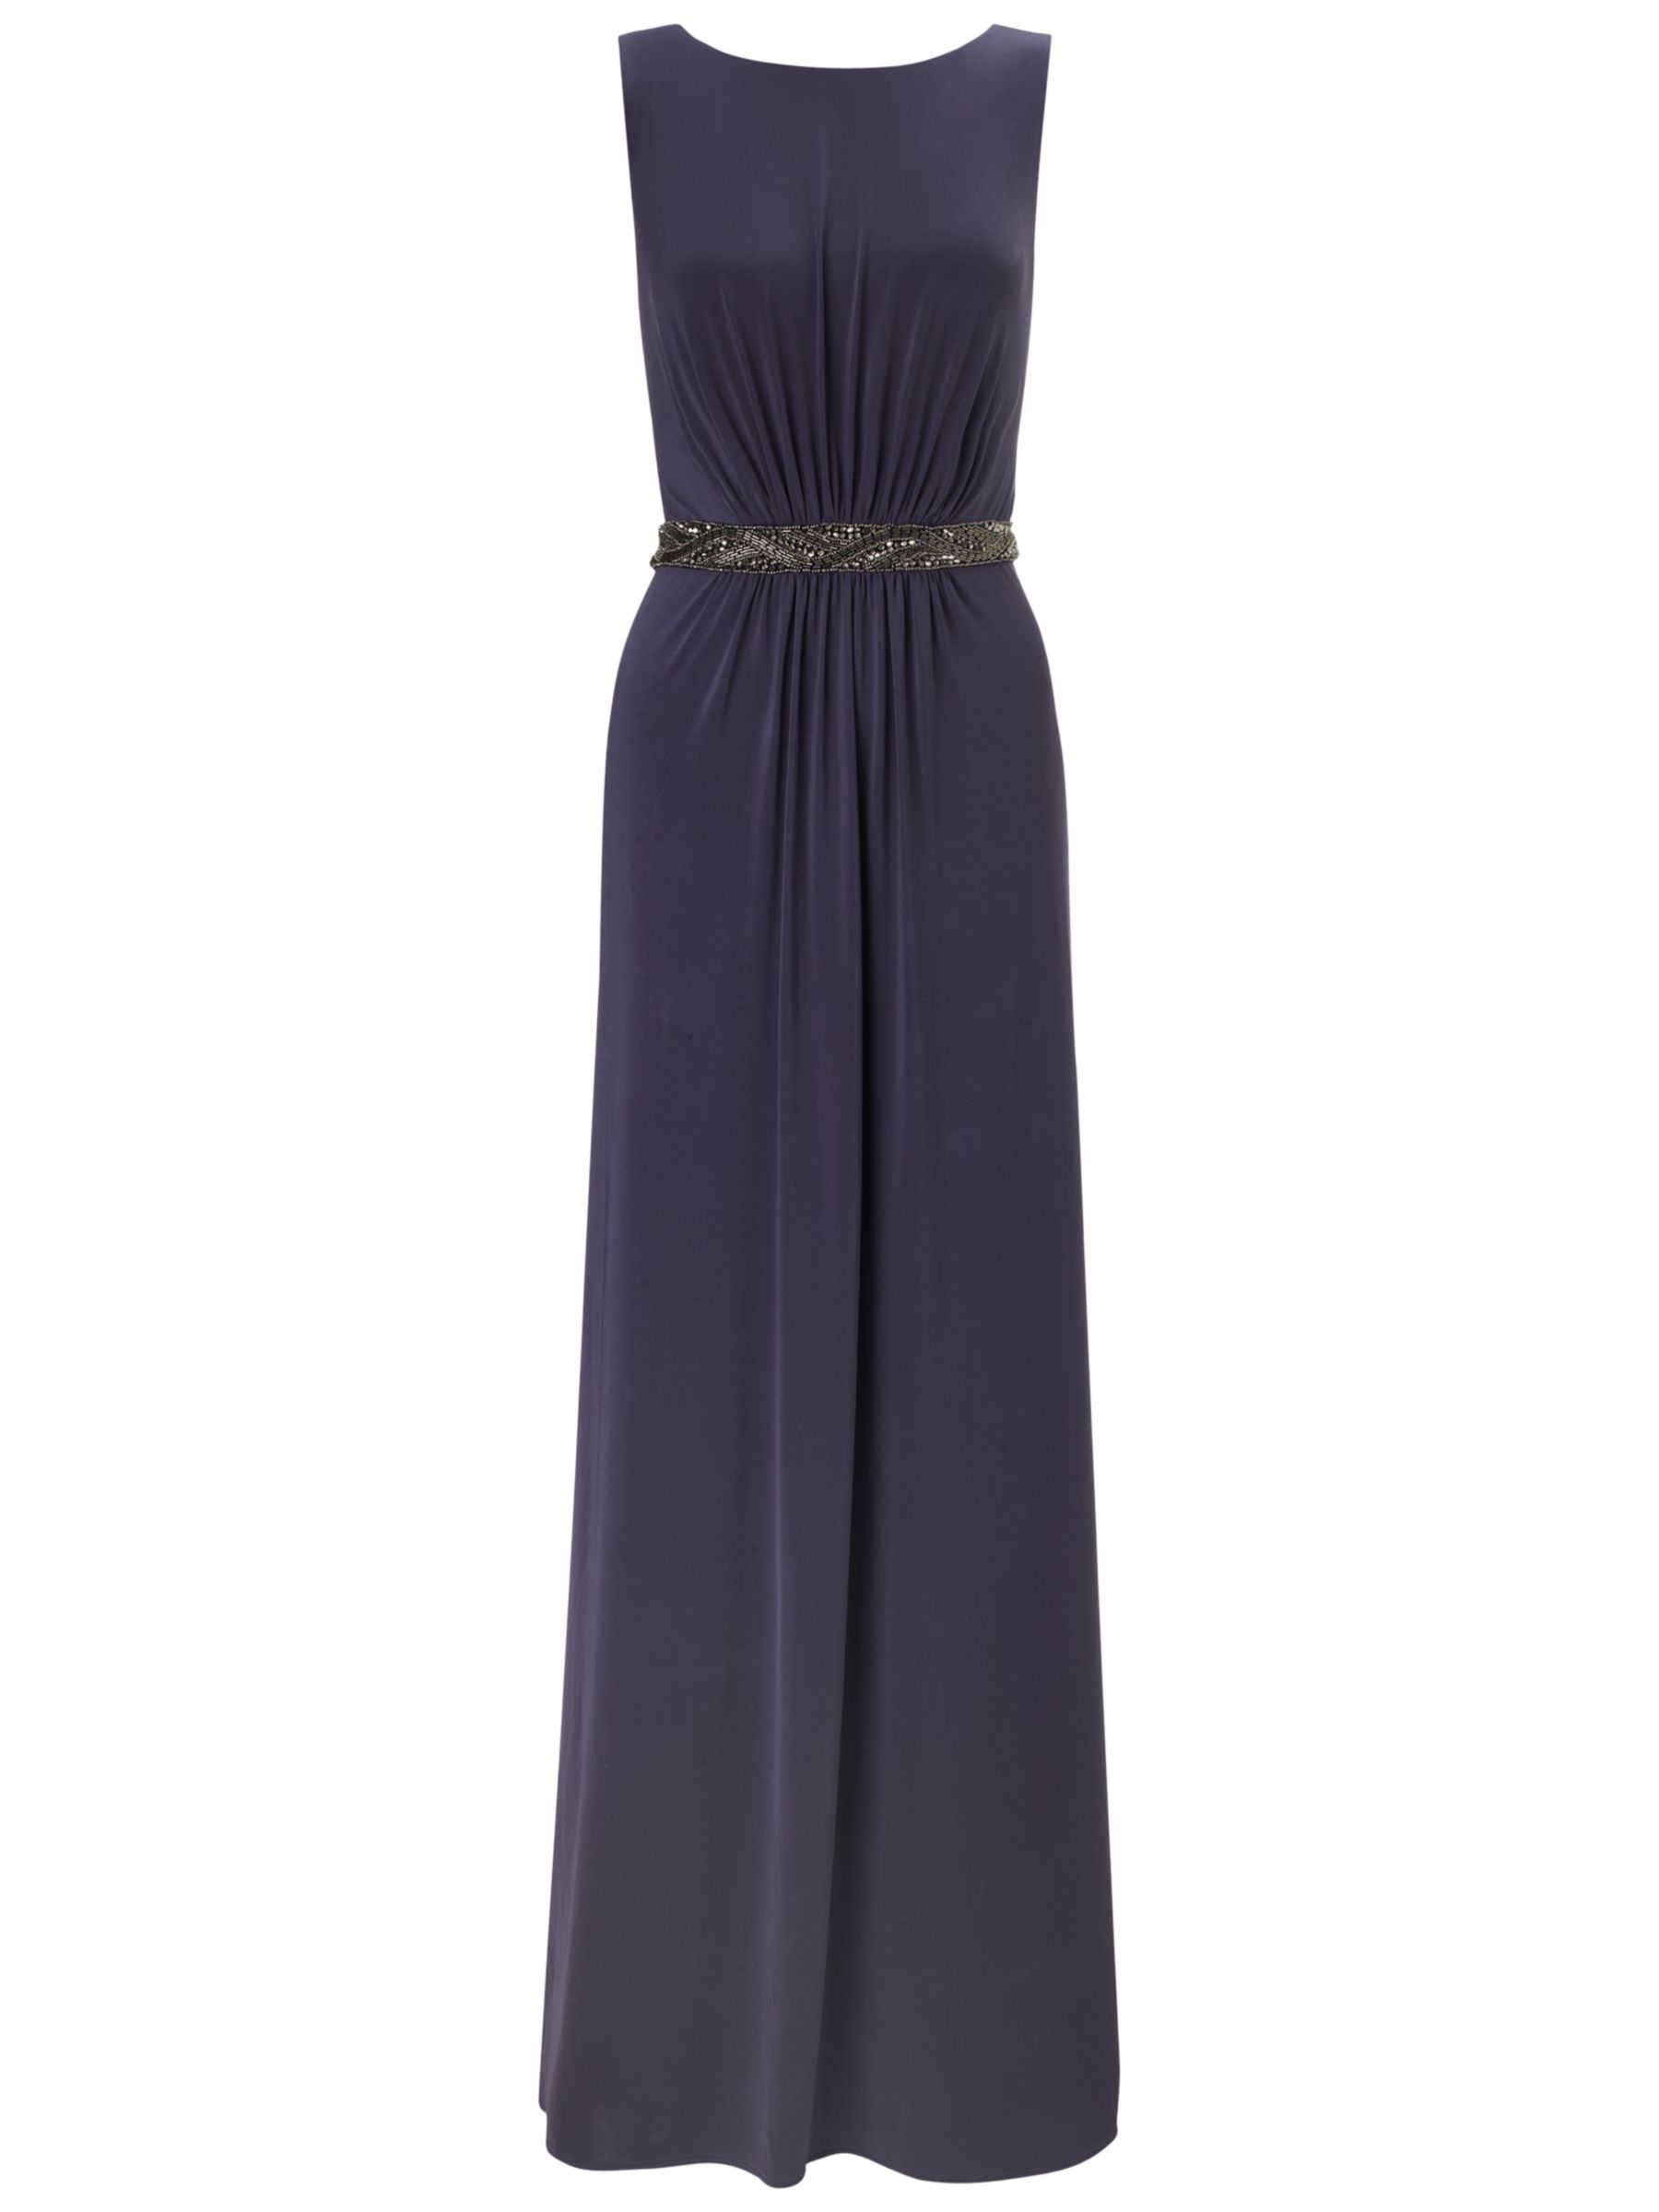 ariella orla maxi dress grape, ariella, orla, maxi, dress, grape, 8|16|10|12|14, clearance, womenswear offers, womens dresses offers, new years party offers, women, inactive womenswear, new reductions, womens dresses, party outfits, evening gowns, special offers, 1697570